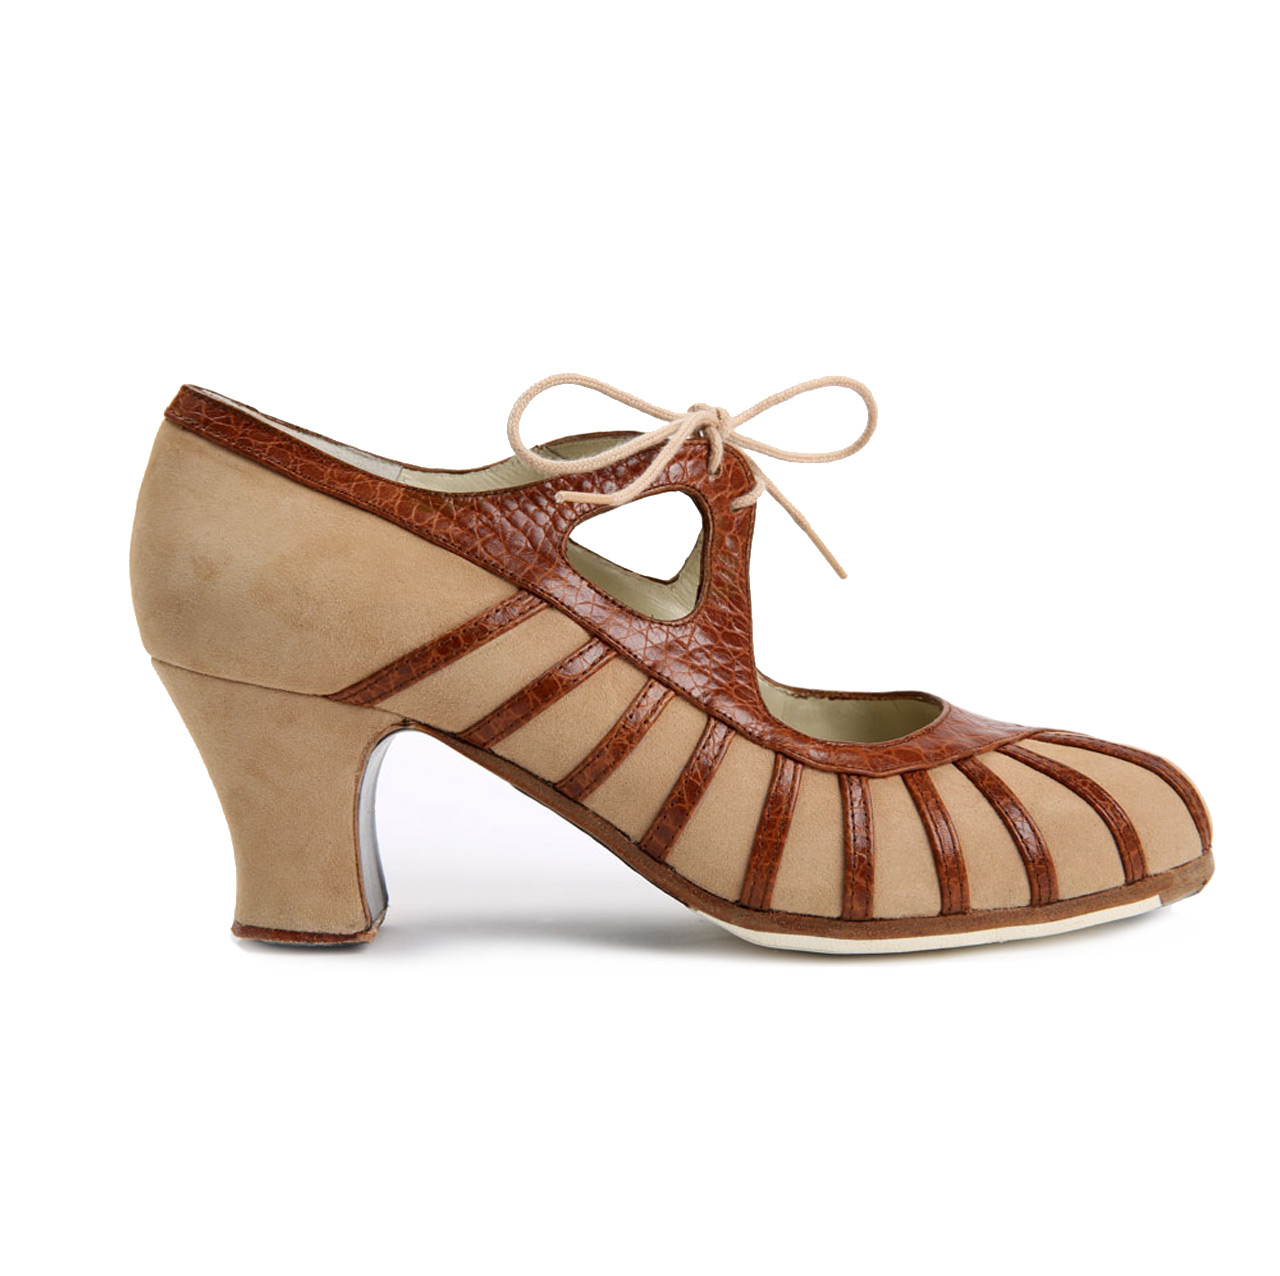 Flamenco Dance Shoe Primor Beige/Snake